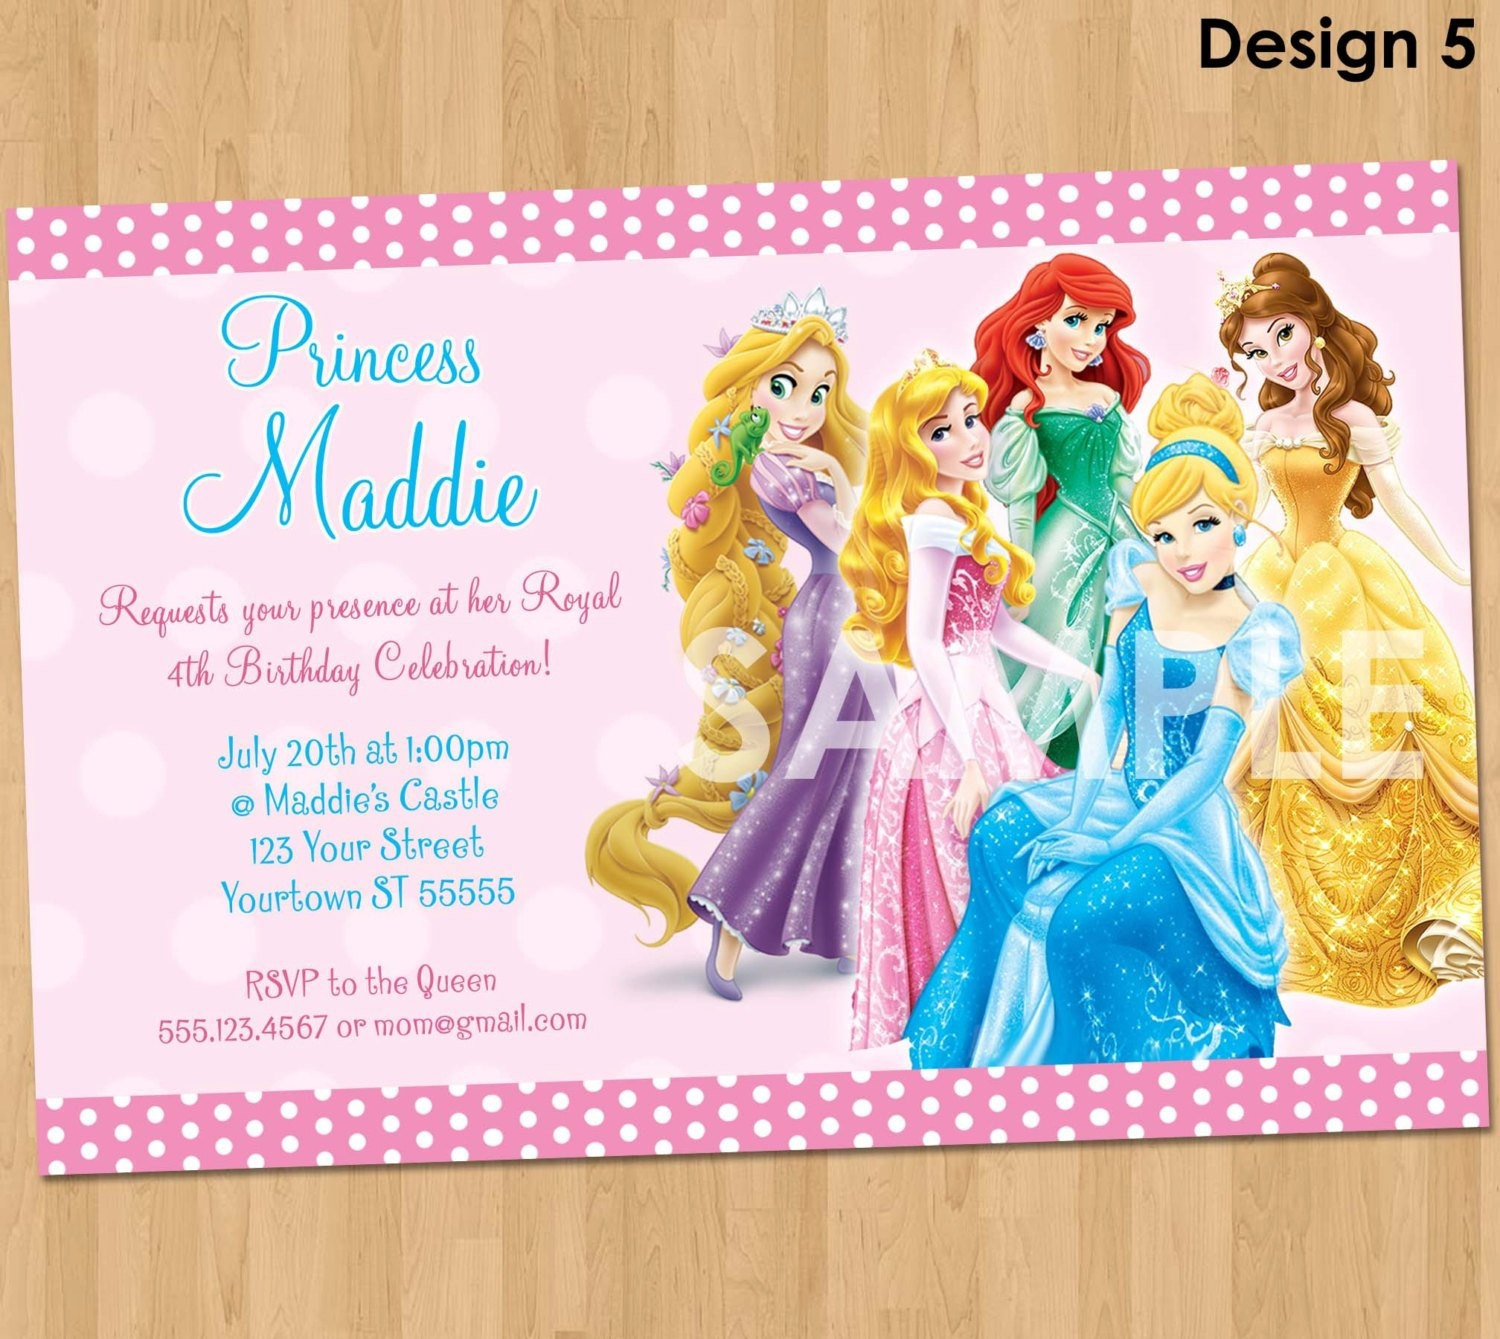 20 Ideas For Disney Princess Birthday Invitations Free Printable - Disney Princess Birthday Invitations Free Printable